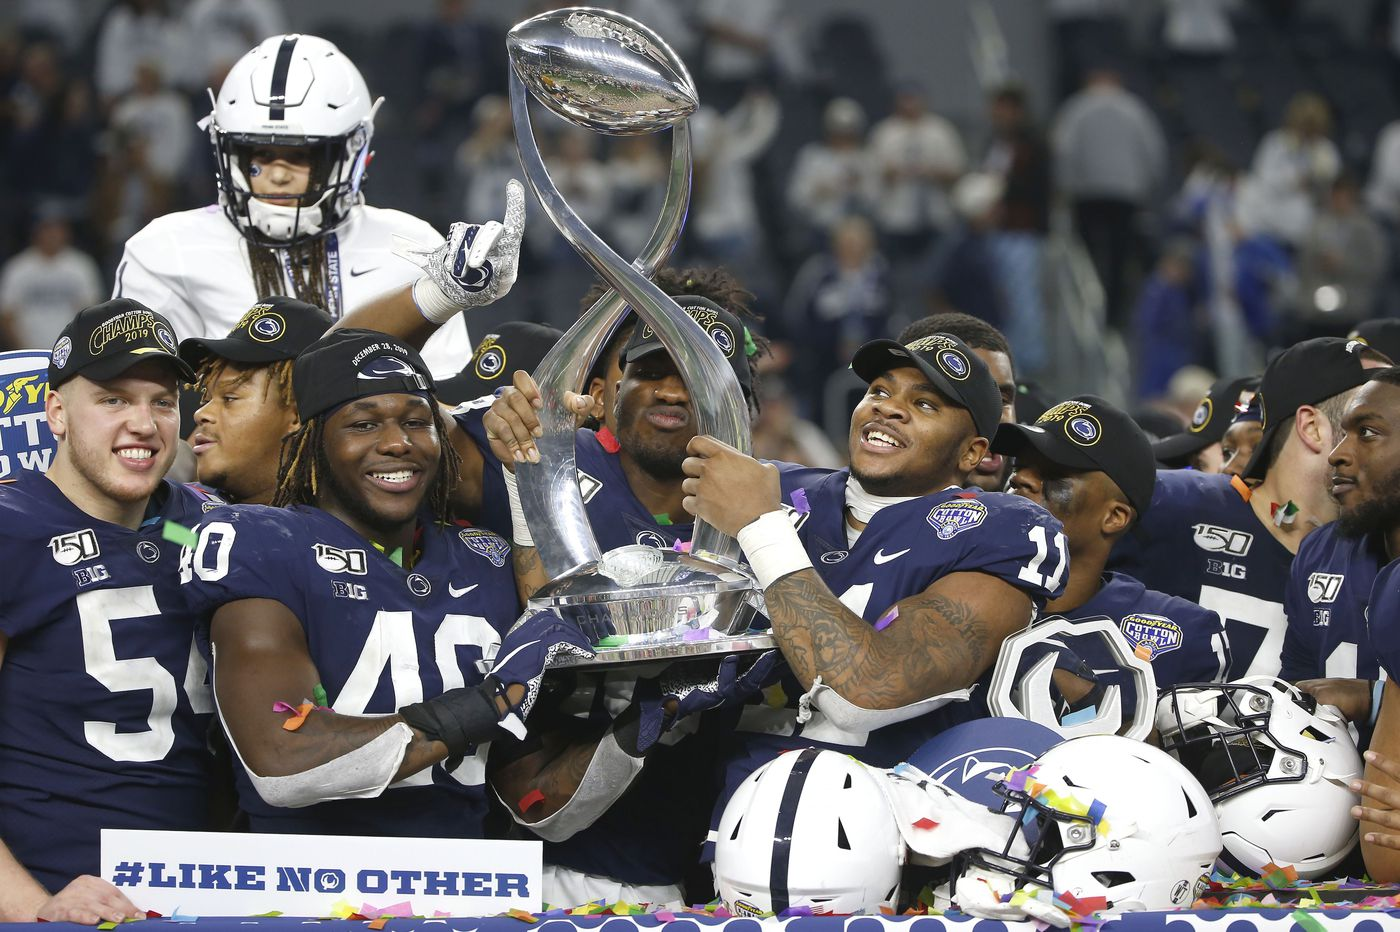 Penn State athletic director Sandy Barbour hopes there will be a 2020 football season